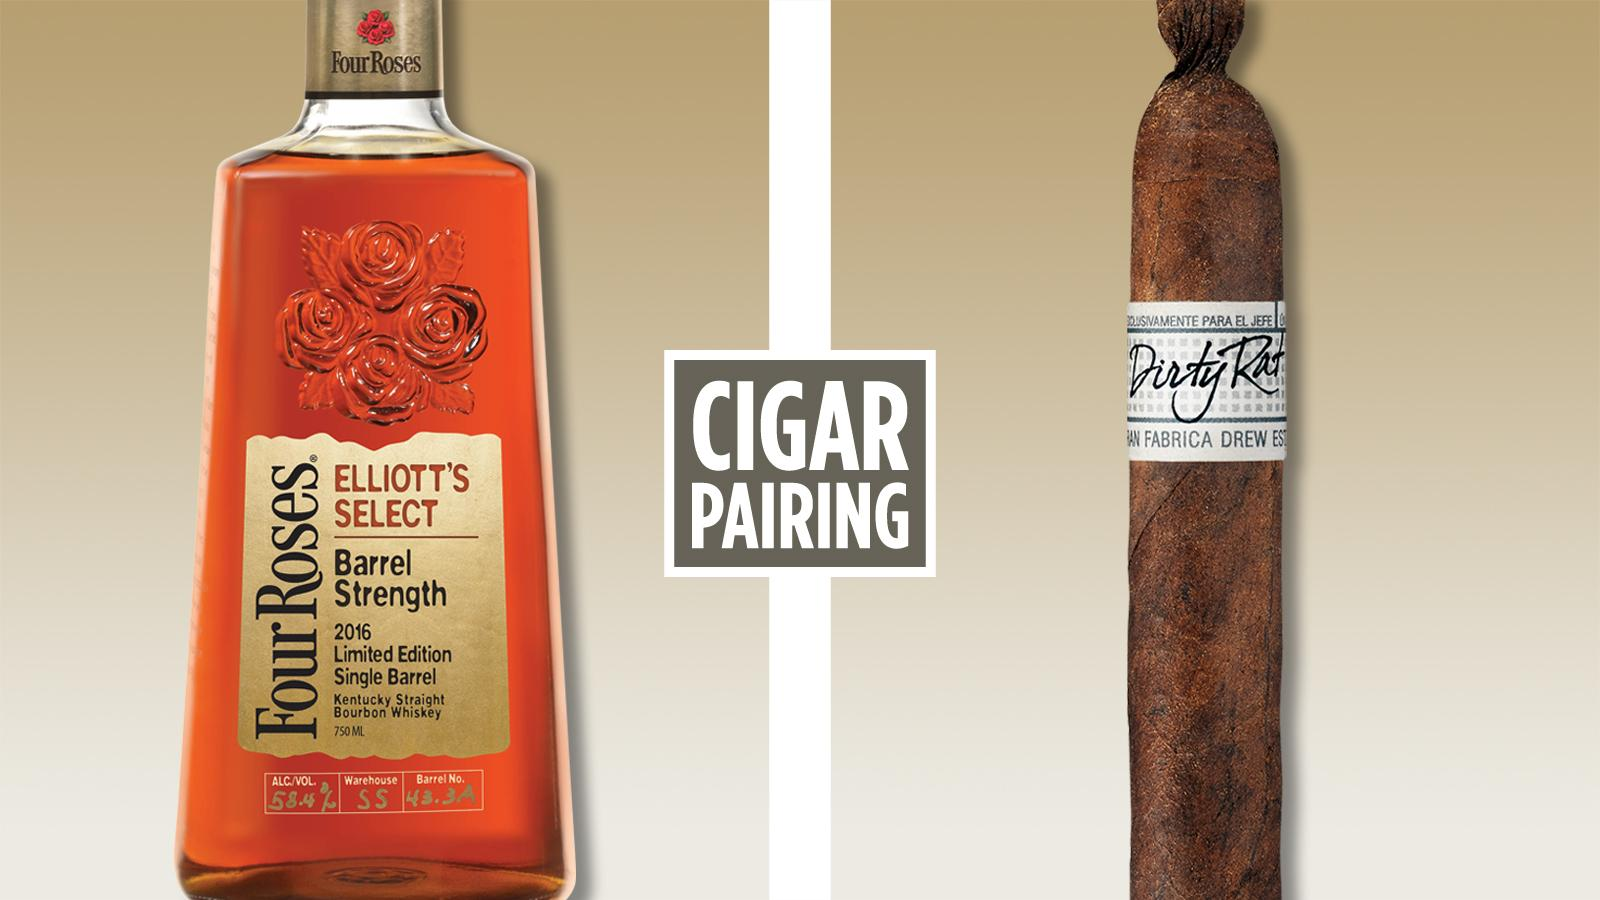 Cigar Pairing: Four Roses Elliott's Select Barrel Strength Bourbon